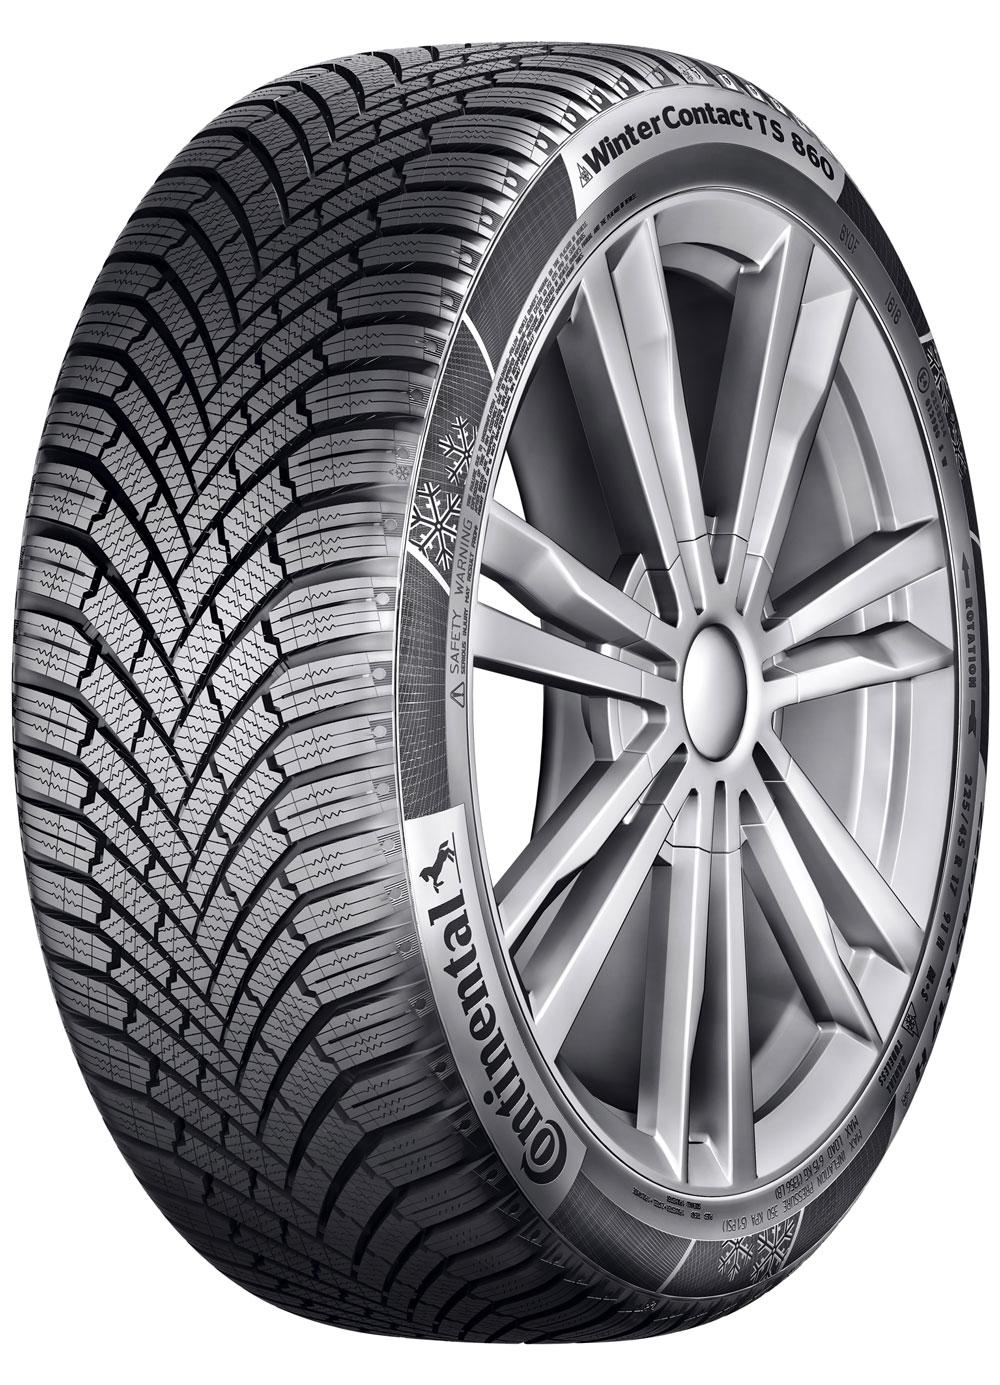 Anvelopa iarna CONTINENTAL WINTER CONTACT TS860 205/65 RR17 96V